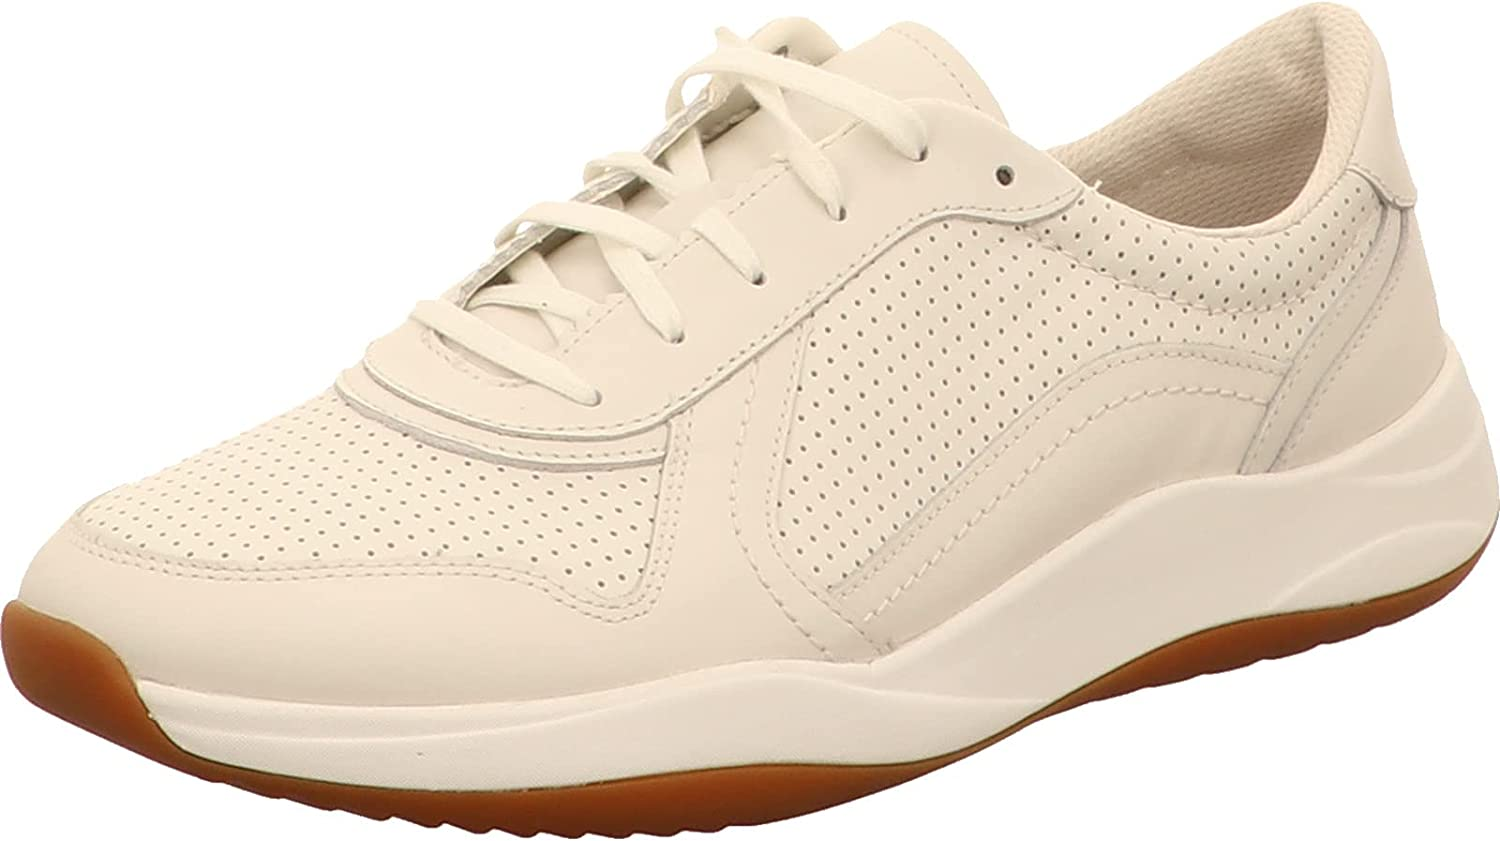 Spring Choice new work one after another Clarks Men's Sift Speed Sneakers Low-Top